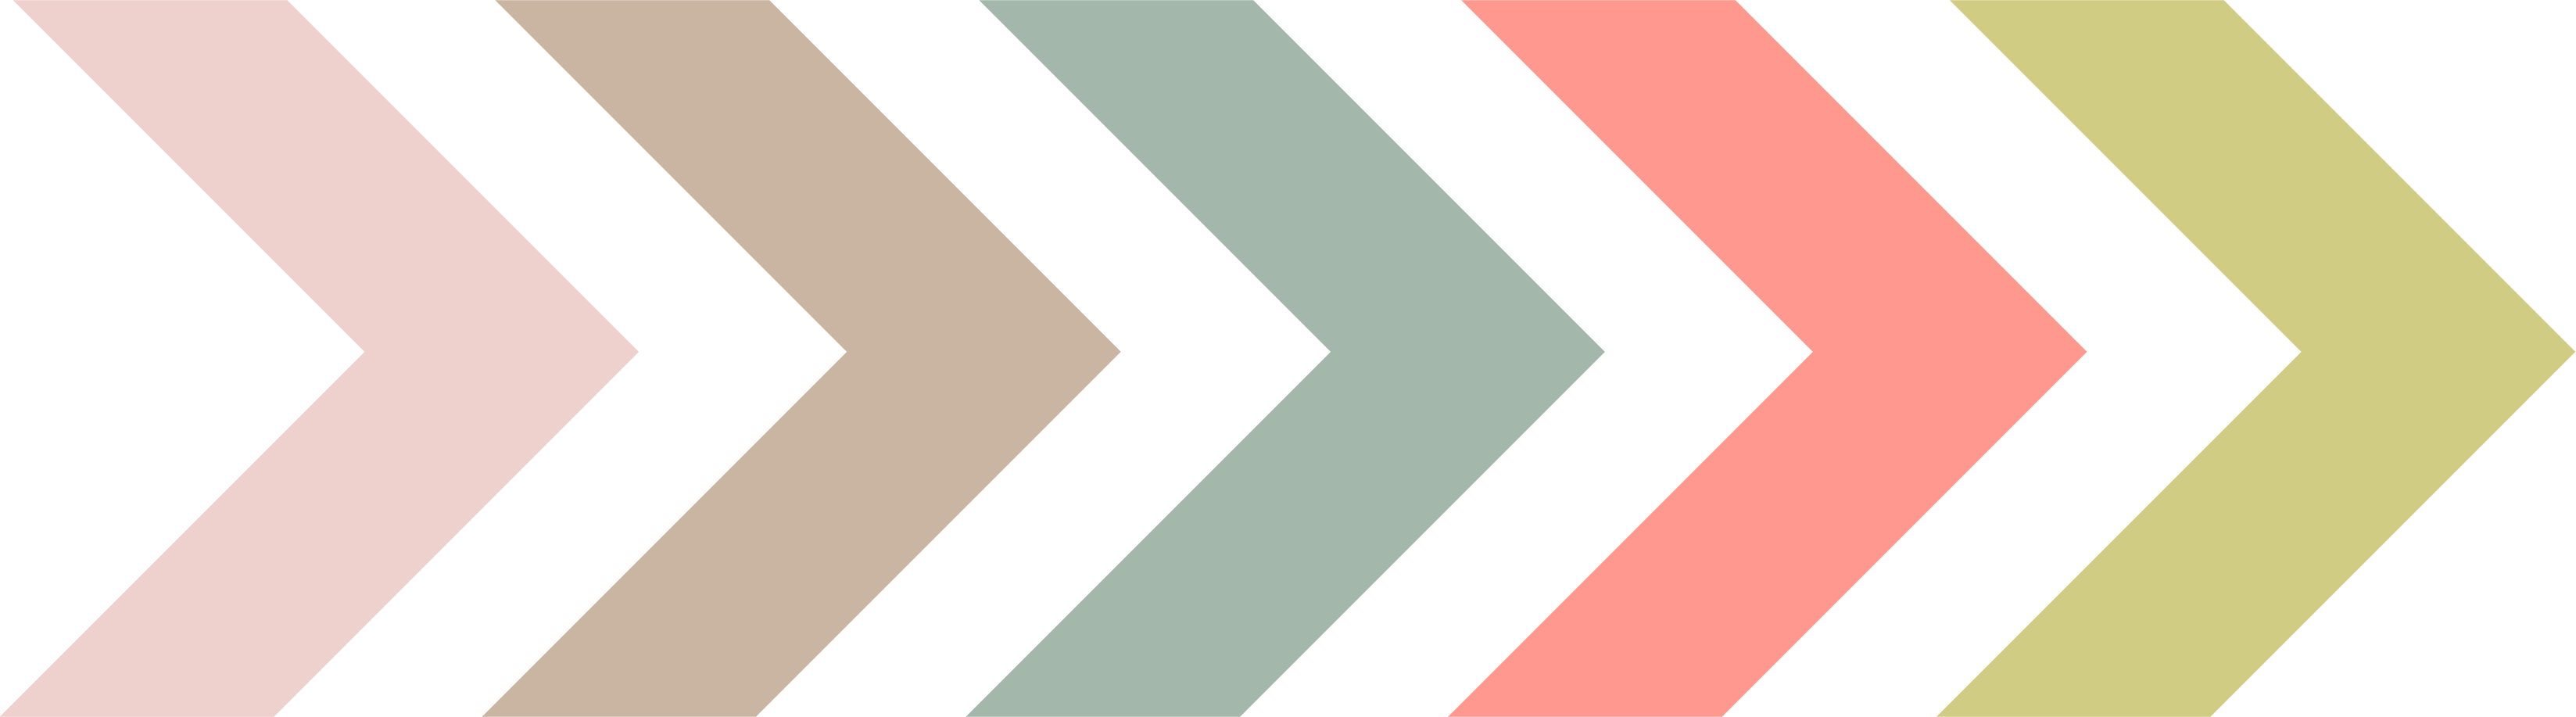 Five different coloured arrows pointing east. Each arrow represents the five Northbound exhibitions and the colours were pulled from their respective artwork. In order or exhibition and from left to right the colours are: pale pink, light brown, dusty green, bright coral, and muted yellow.